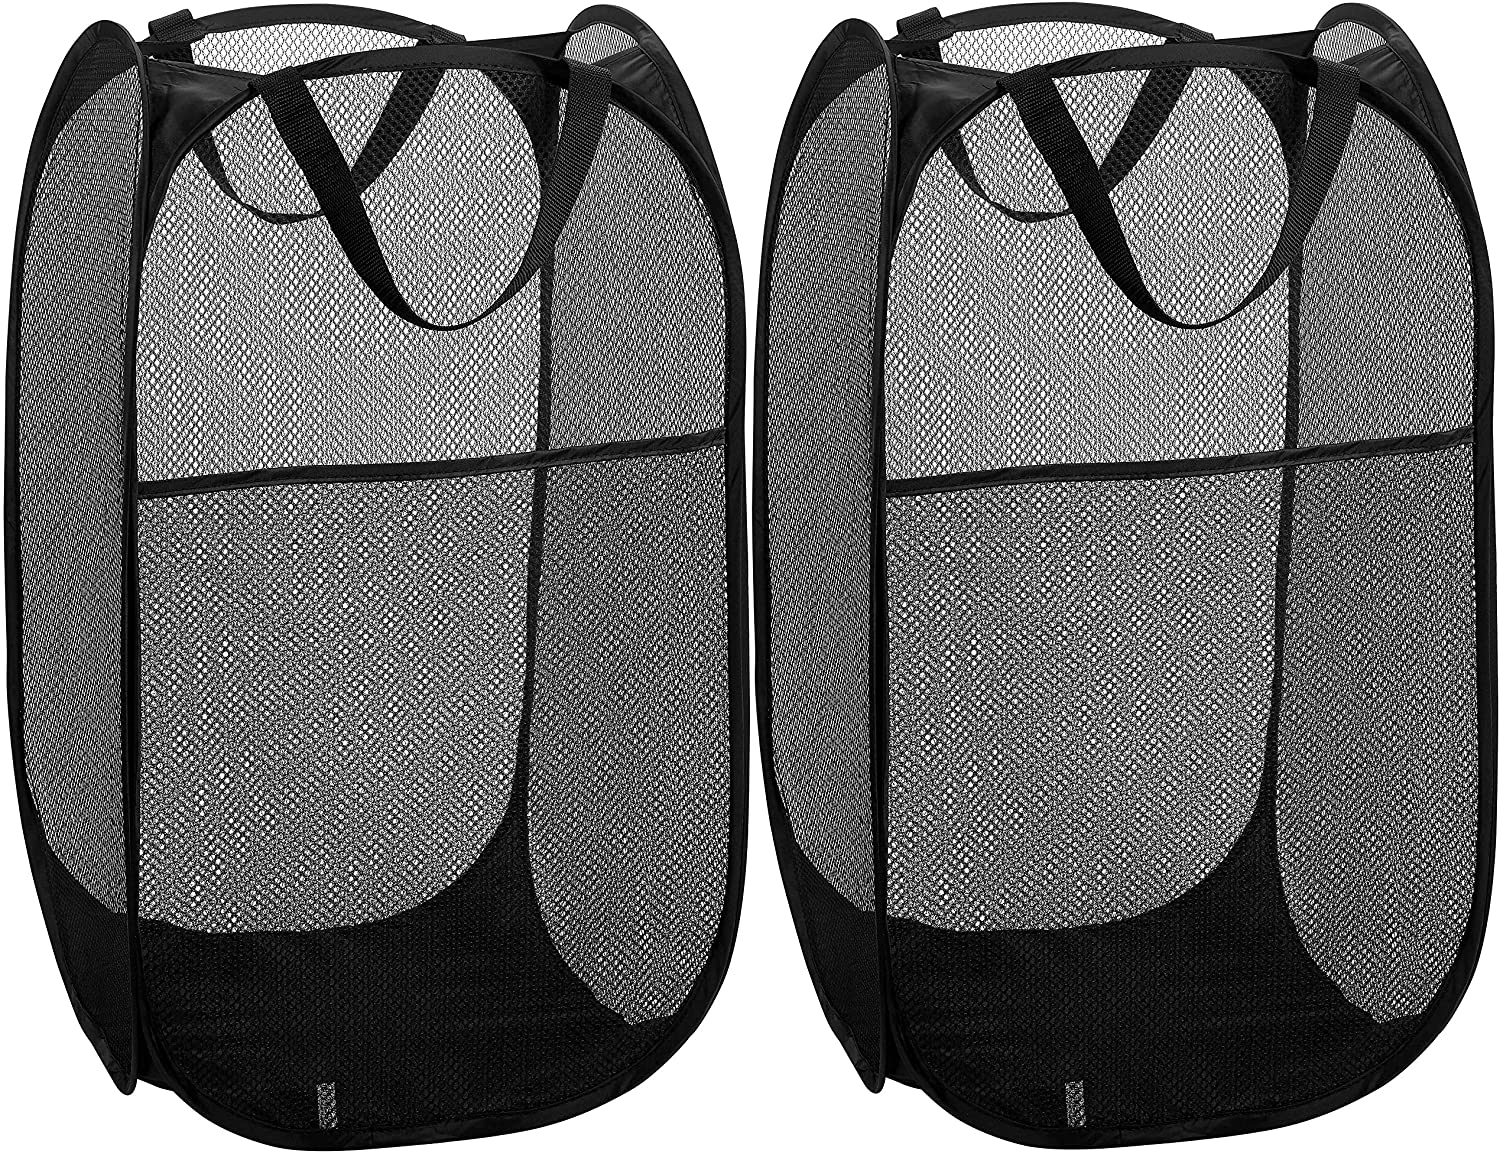 Mesh Popup Laundry Hamper - Portable, Durable Handles, Collapsible for Storage and Easy to Open. Folding Pop-Up Clothes Hampers are Great for The Kids Room, College Dorm or Travel. (Black | Set of 2)